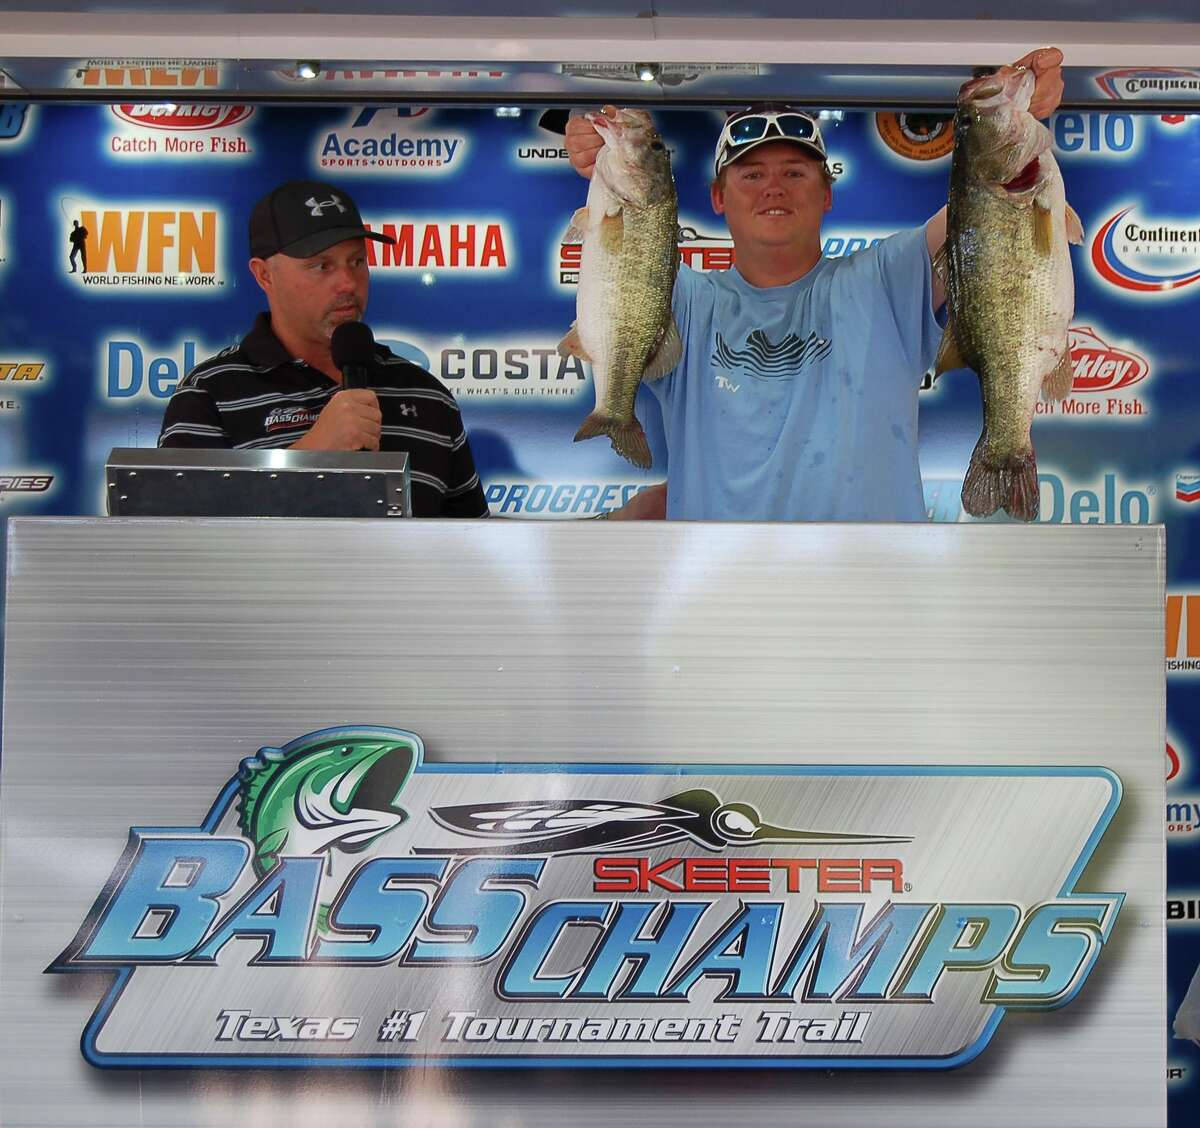 Father & Son Bob & Travis Signorin topped the field of contenders, winning 1st place overall with 16.29 lbs as well as Big Bass Honors with their 9.35 lb kicker. photo by Patty Lenderman